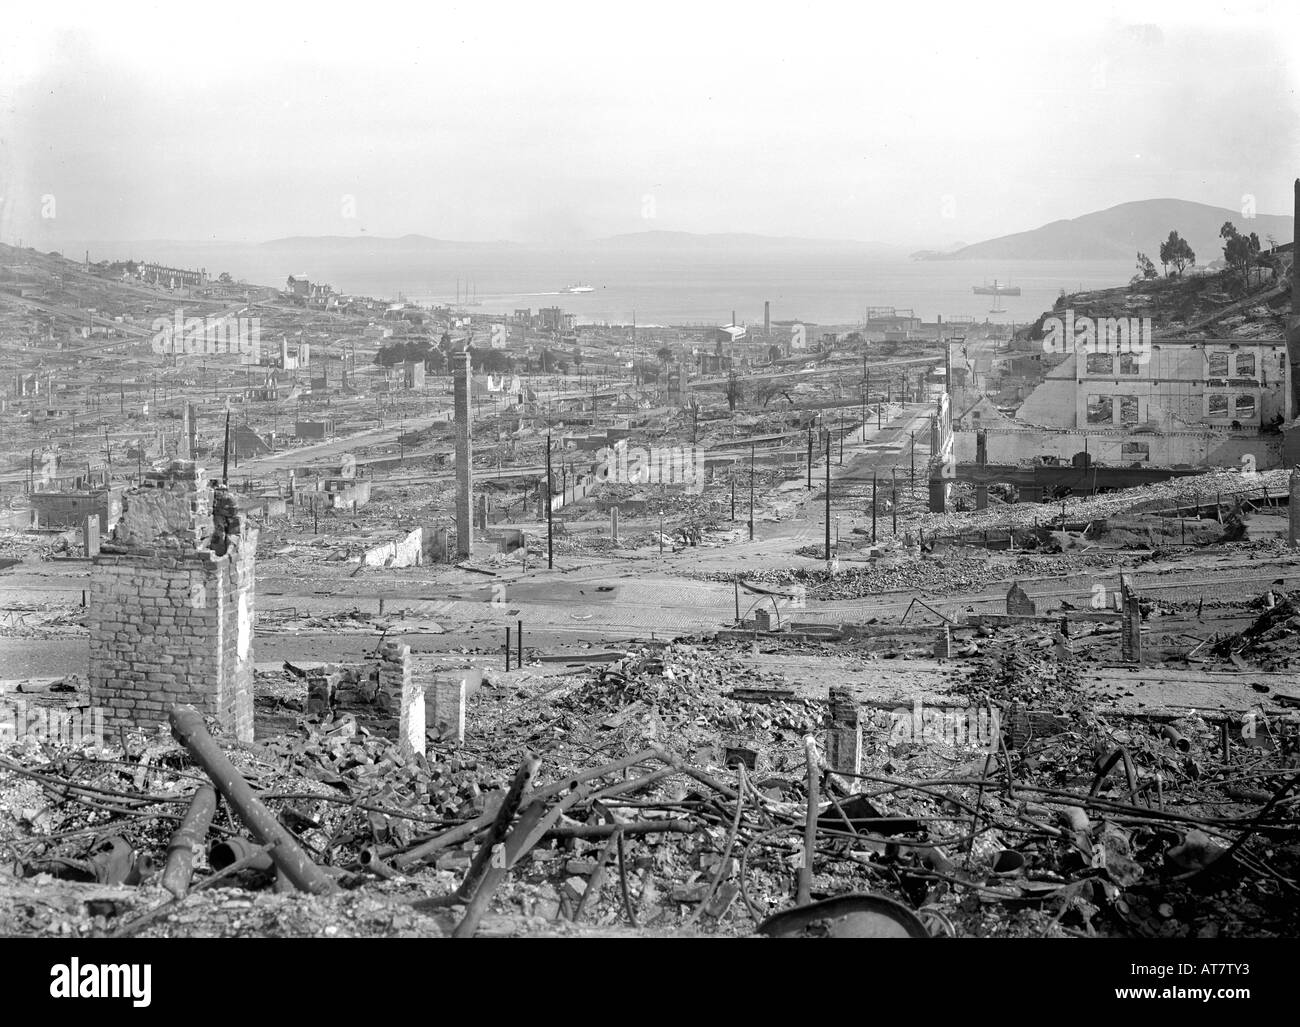 Aftermath of the great 1906 San Francisco Earthquake. - Stock Image